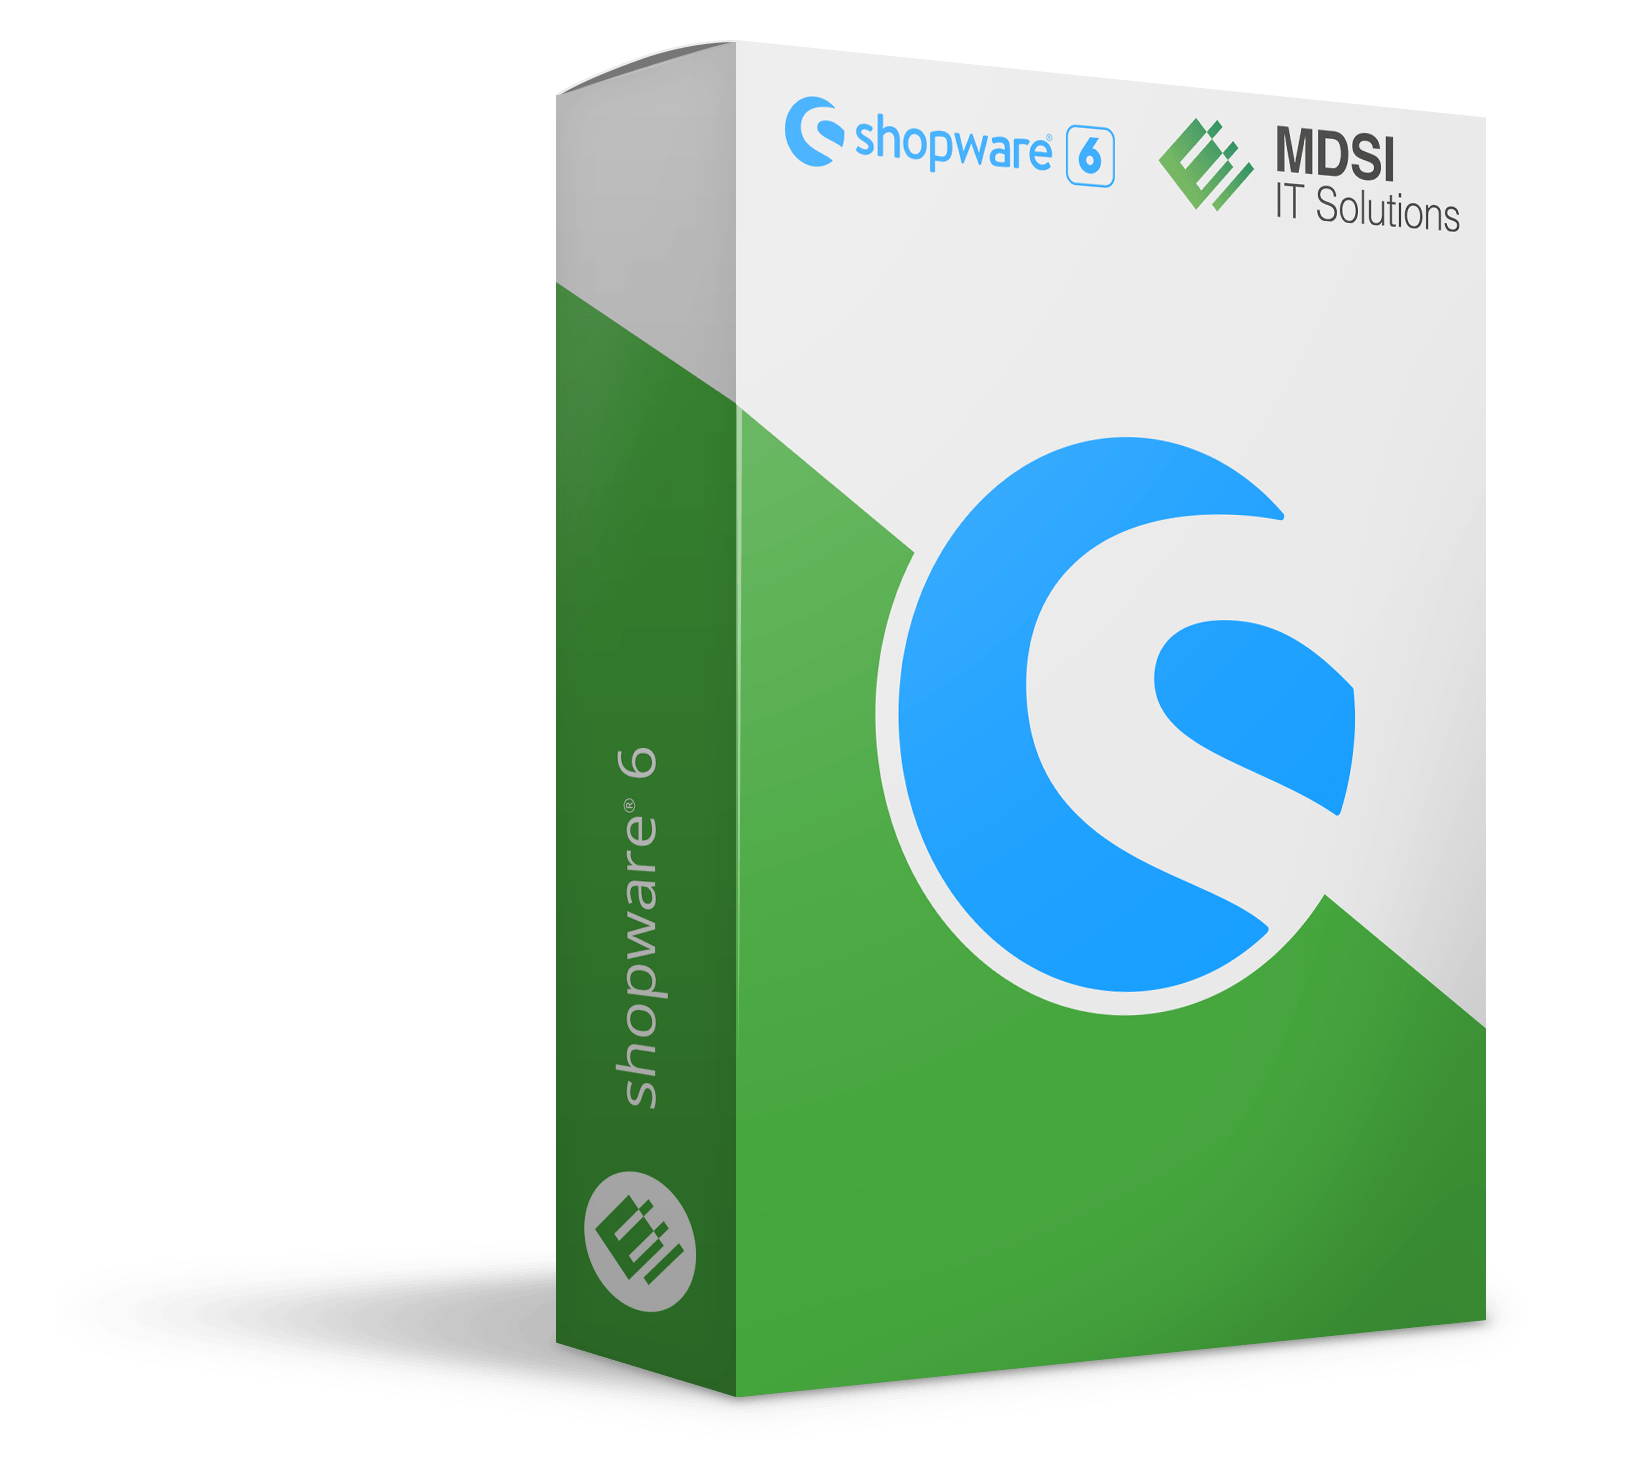 MDSI Softwarebox Shopware